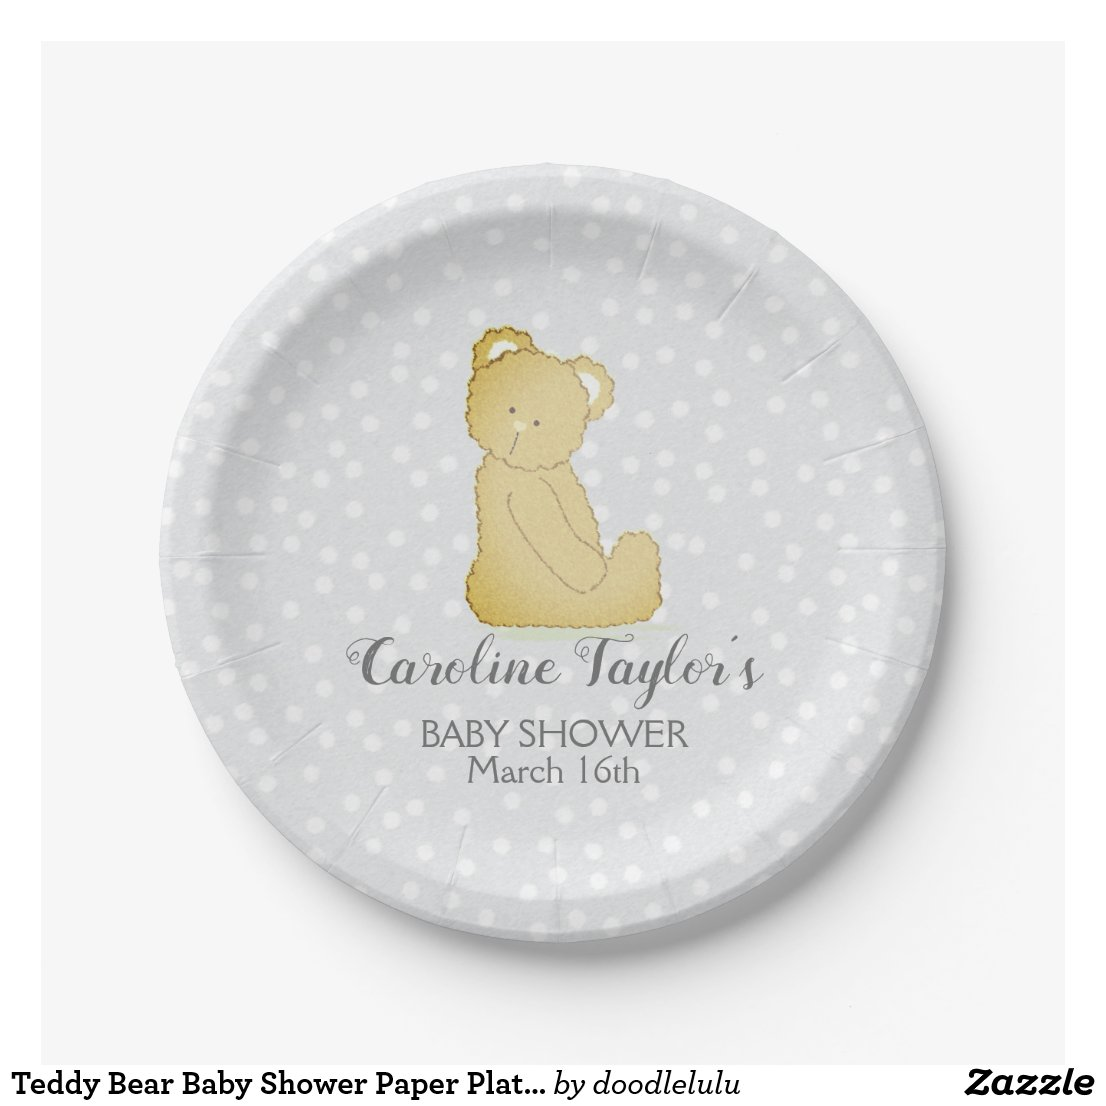 Teddy Bear Baby Shower Paper Plate gray and brown